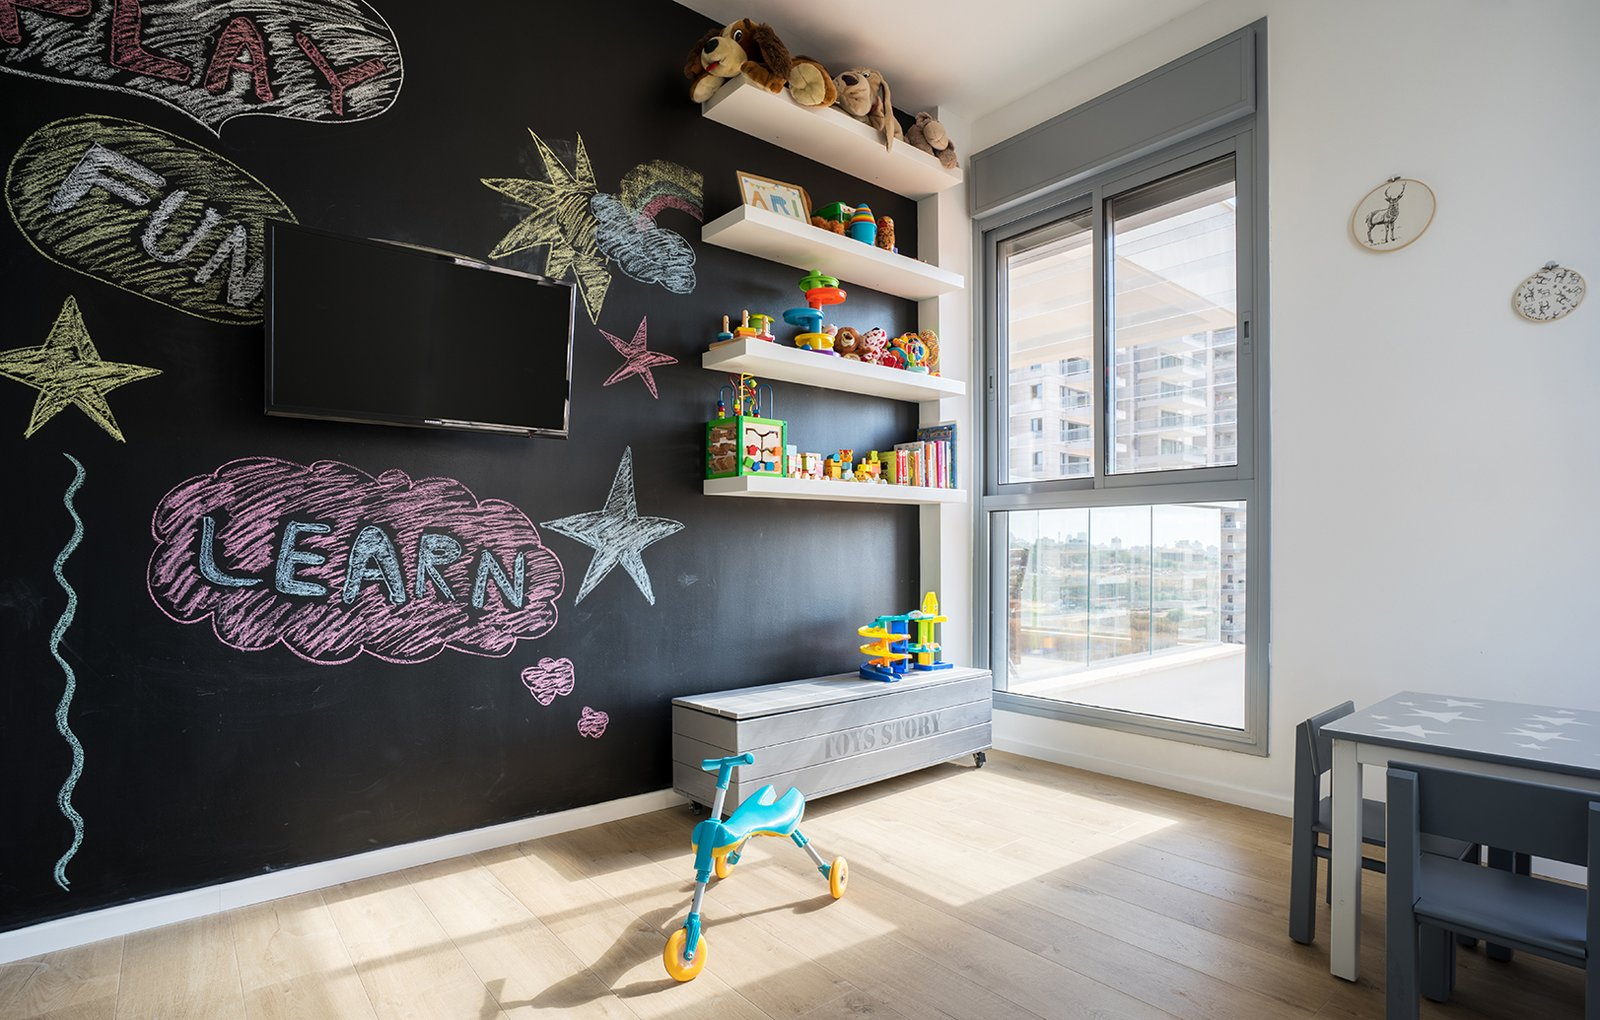 A chalkboard wall encourages creative exploration in the child's room.  Photo 4 of 4 in A Riotous Makeover for a Generic  High-Rise Home